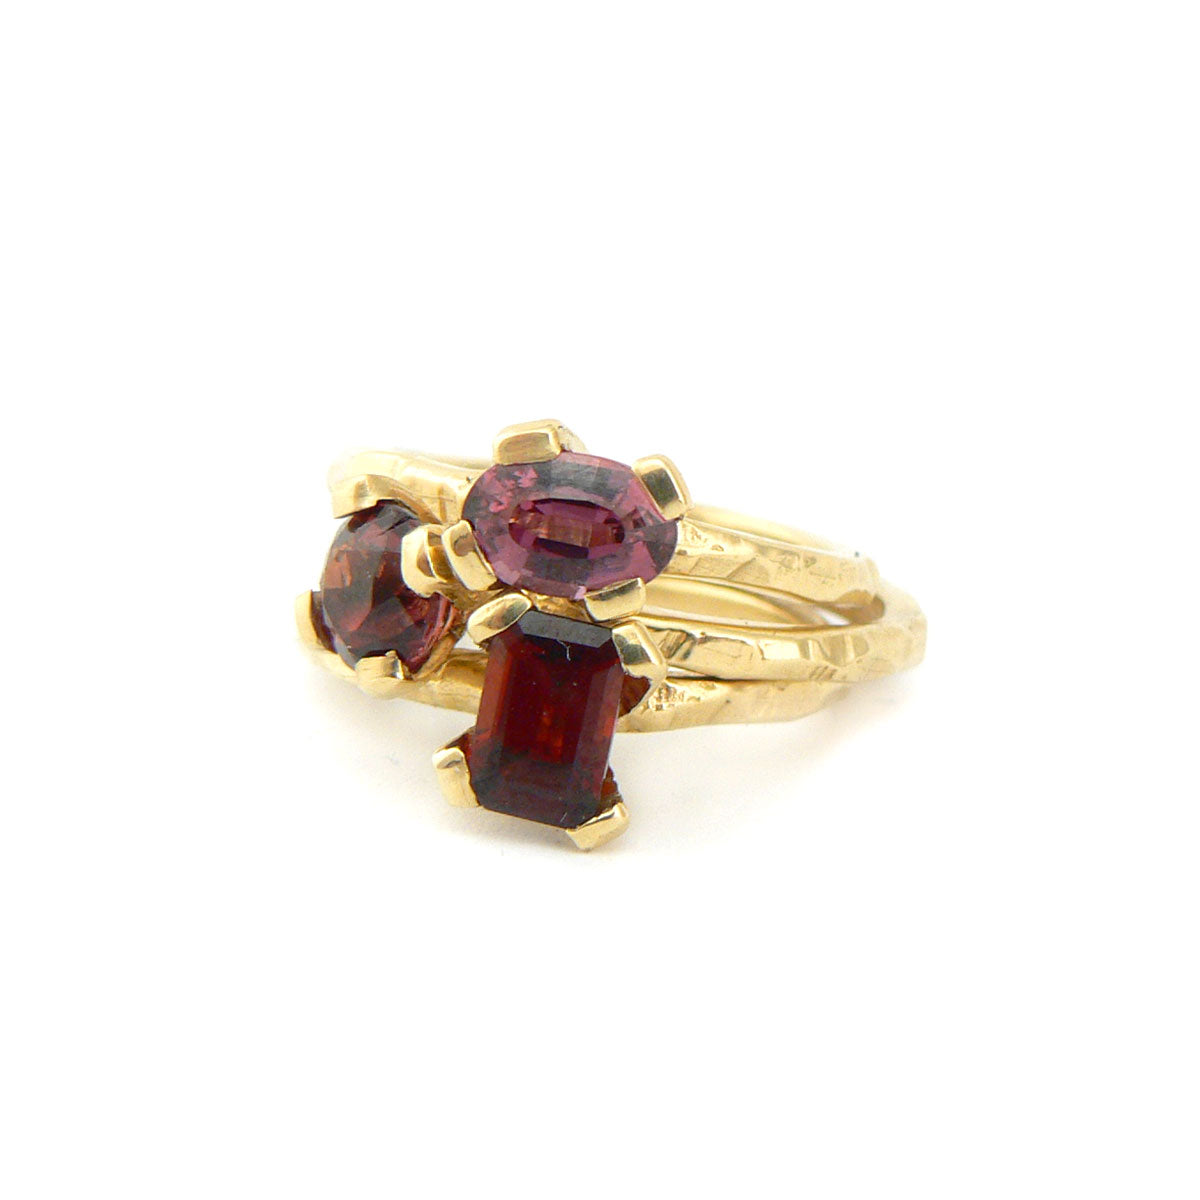 garnet and gold carved stack ring 18ct yellow gold, bespoke custom handmade